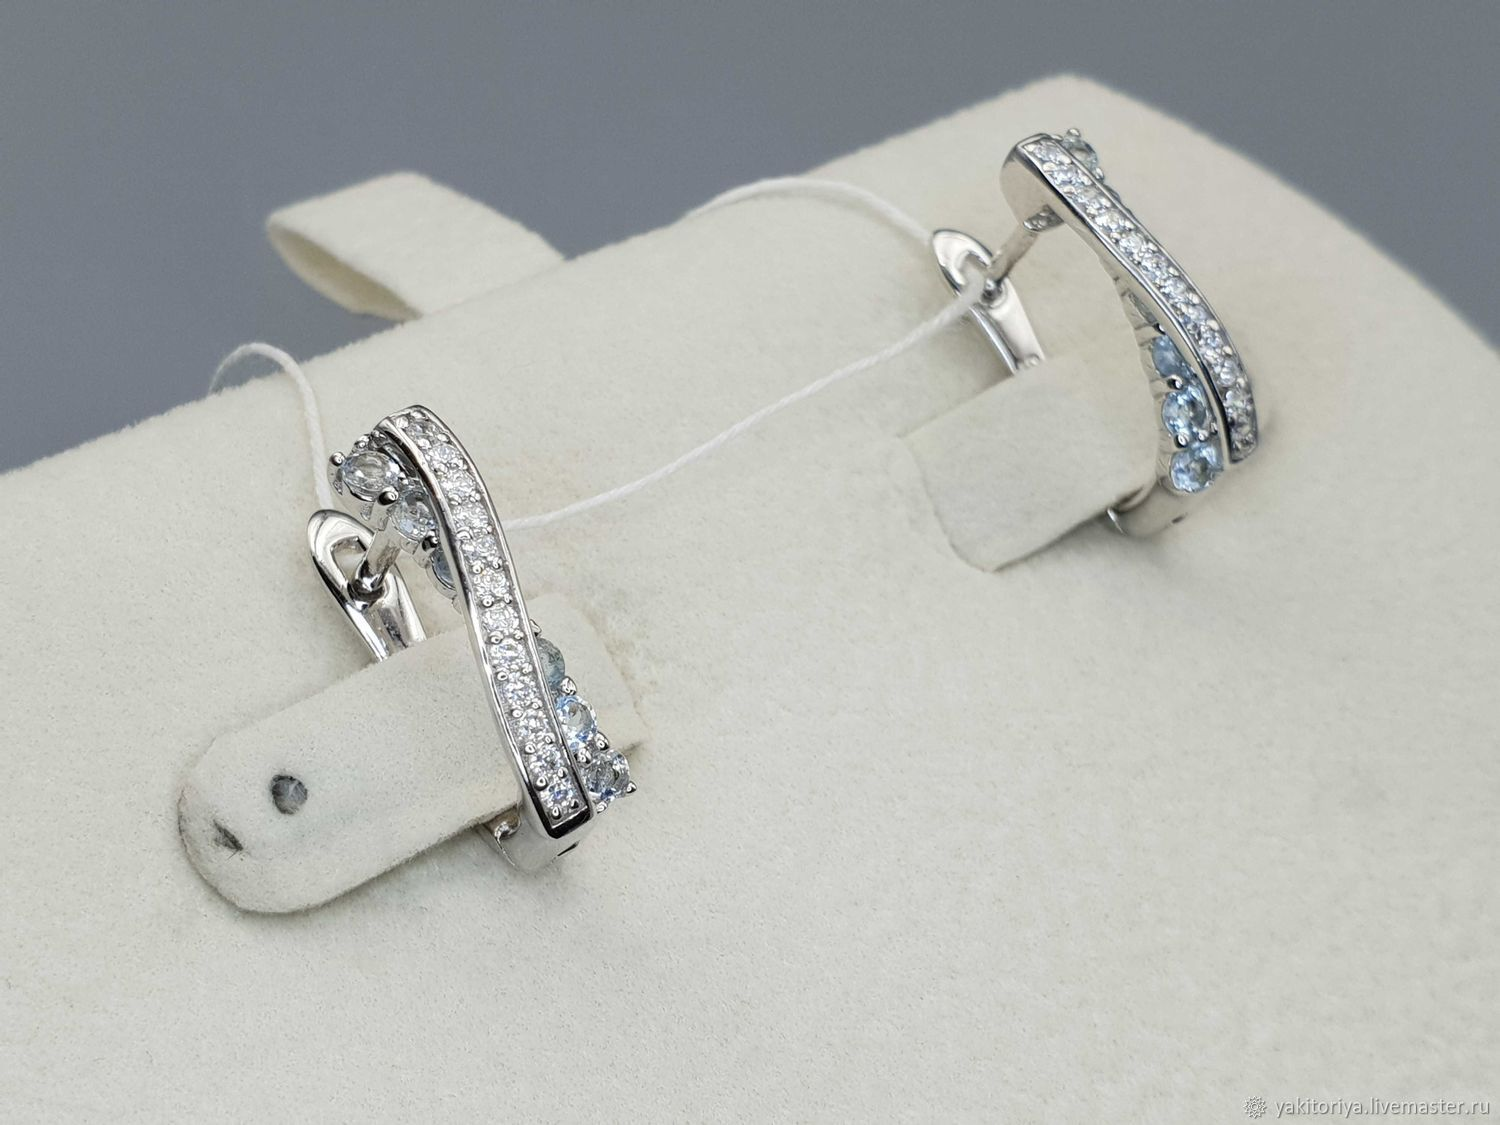 Silver earrings with topaz and cubic zirconia, Earrings, Moscow,  Фото №1